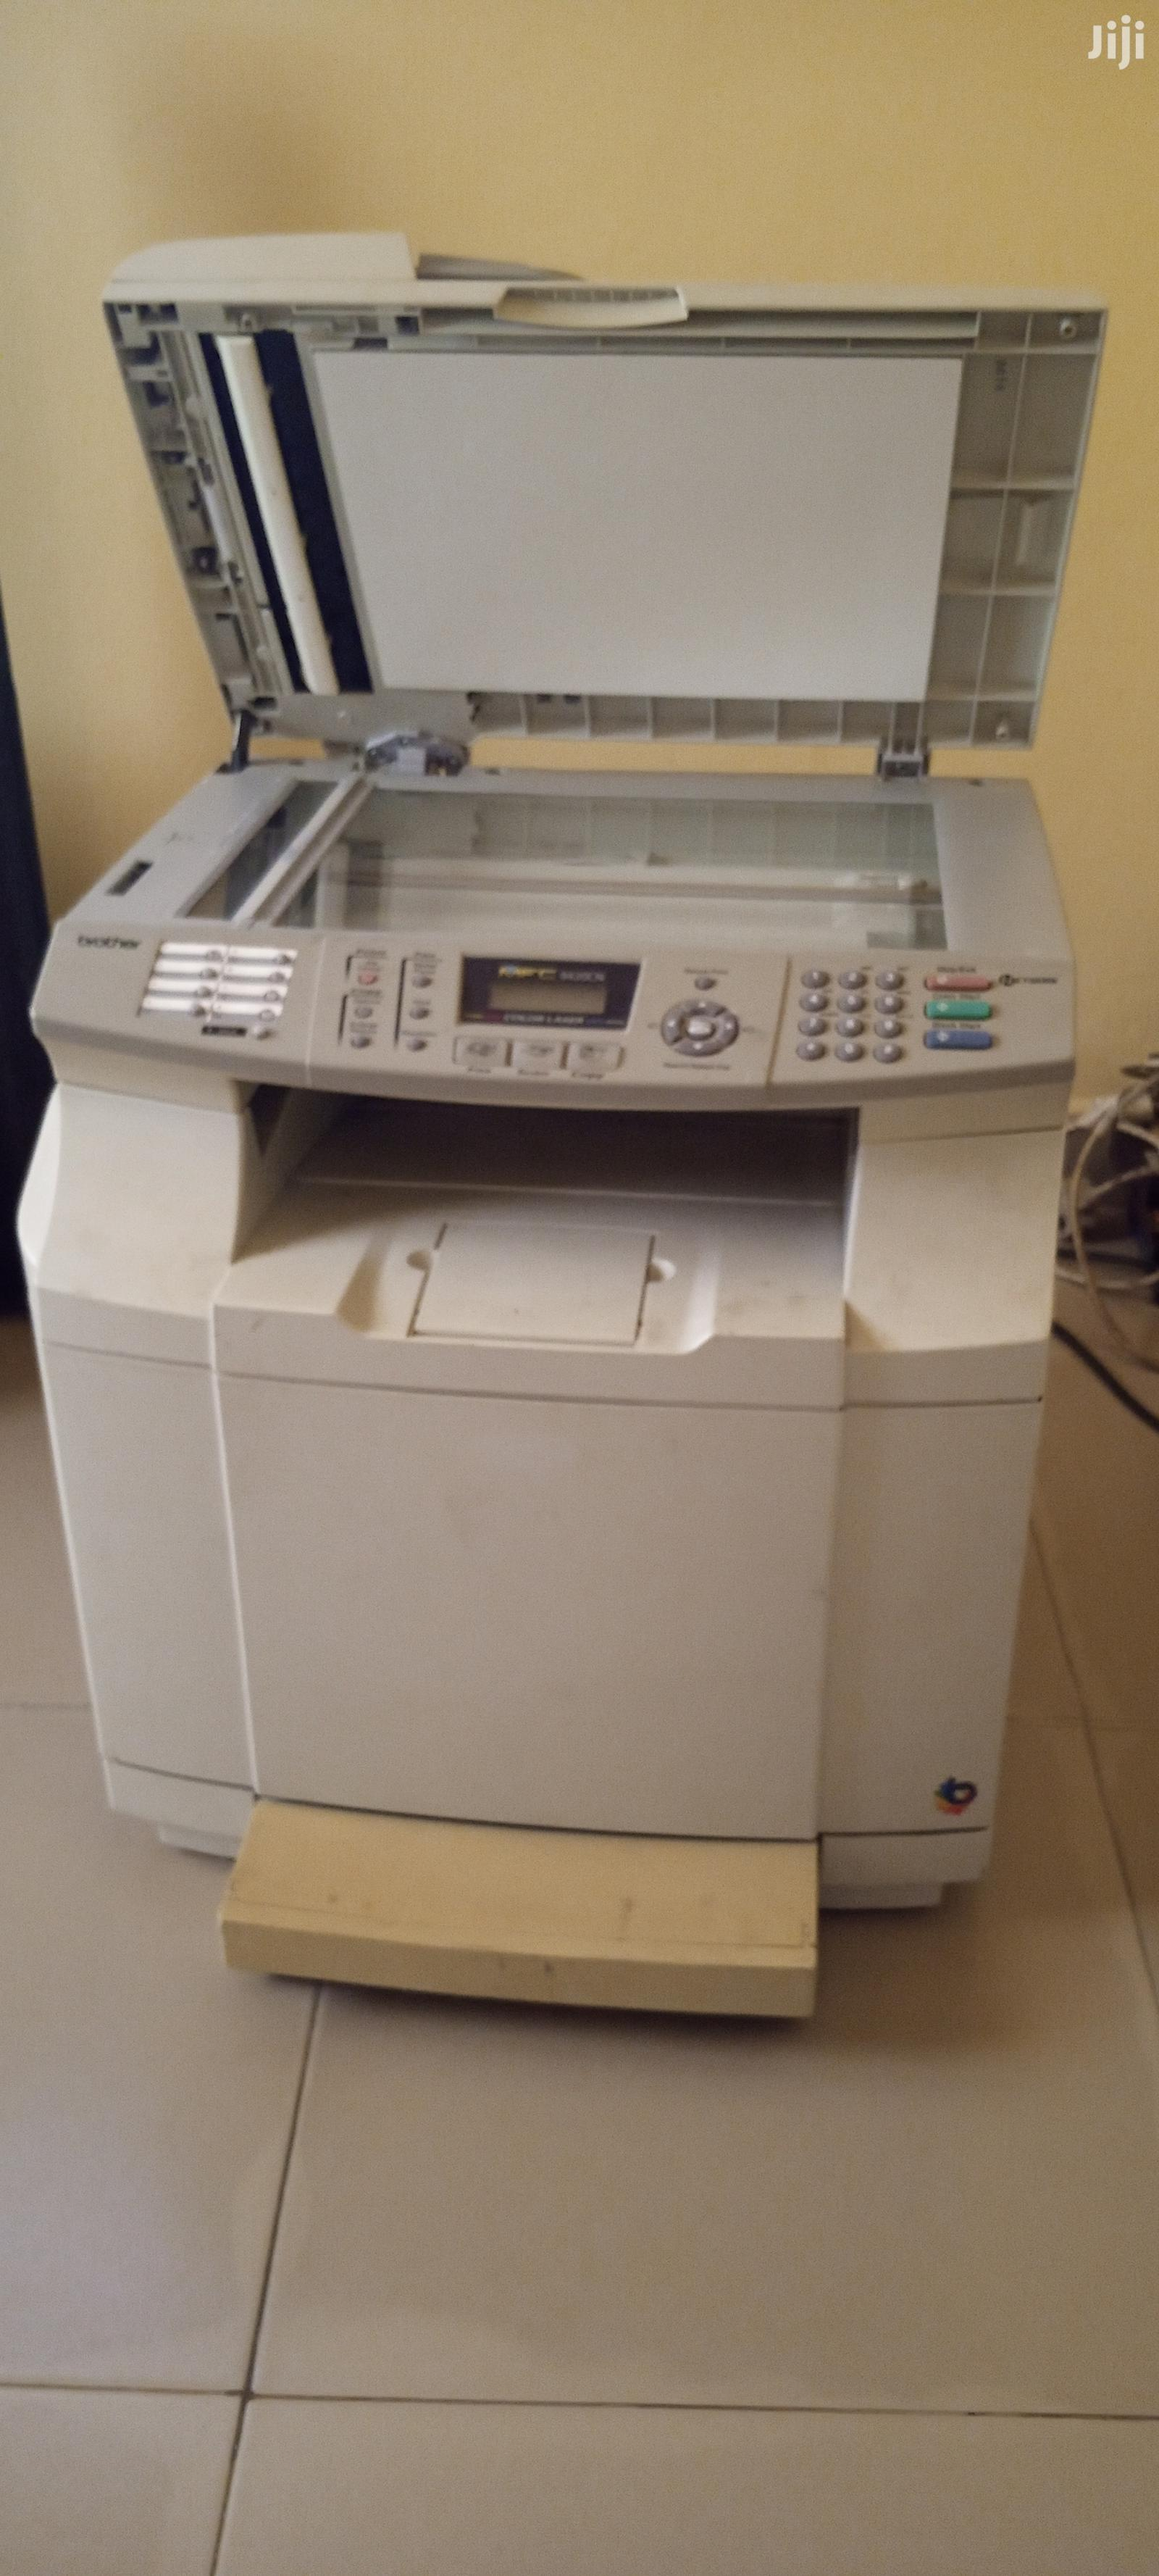 Brother Laser Jet Printer | Printers & Scanners for sale in Accra Metropolitan, Greater Accra, Ghana